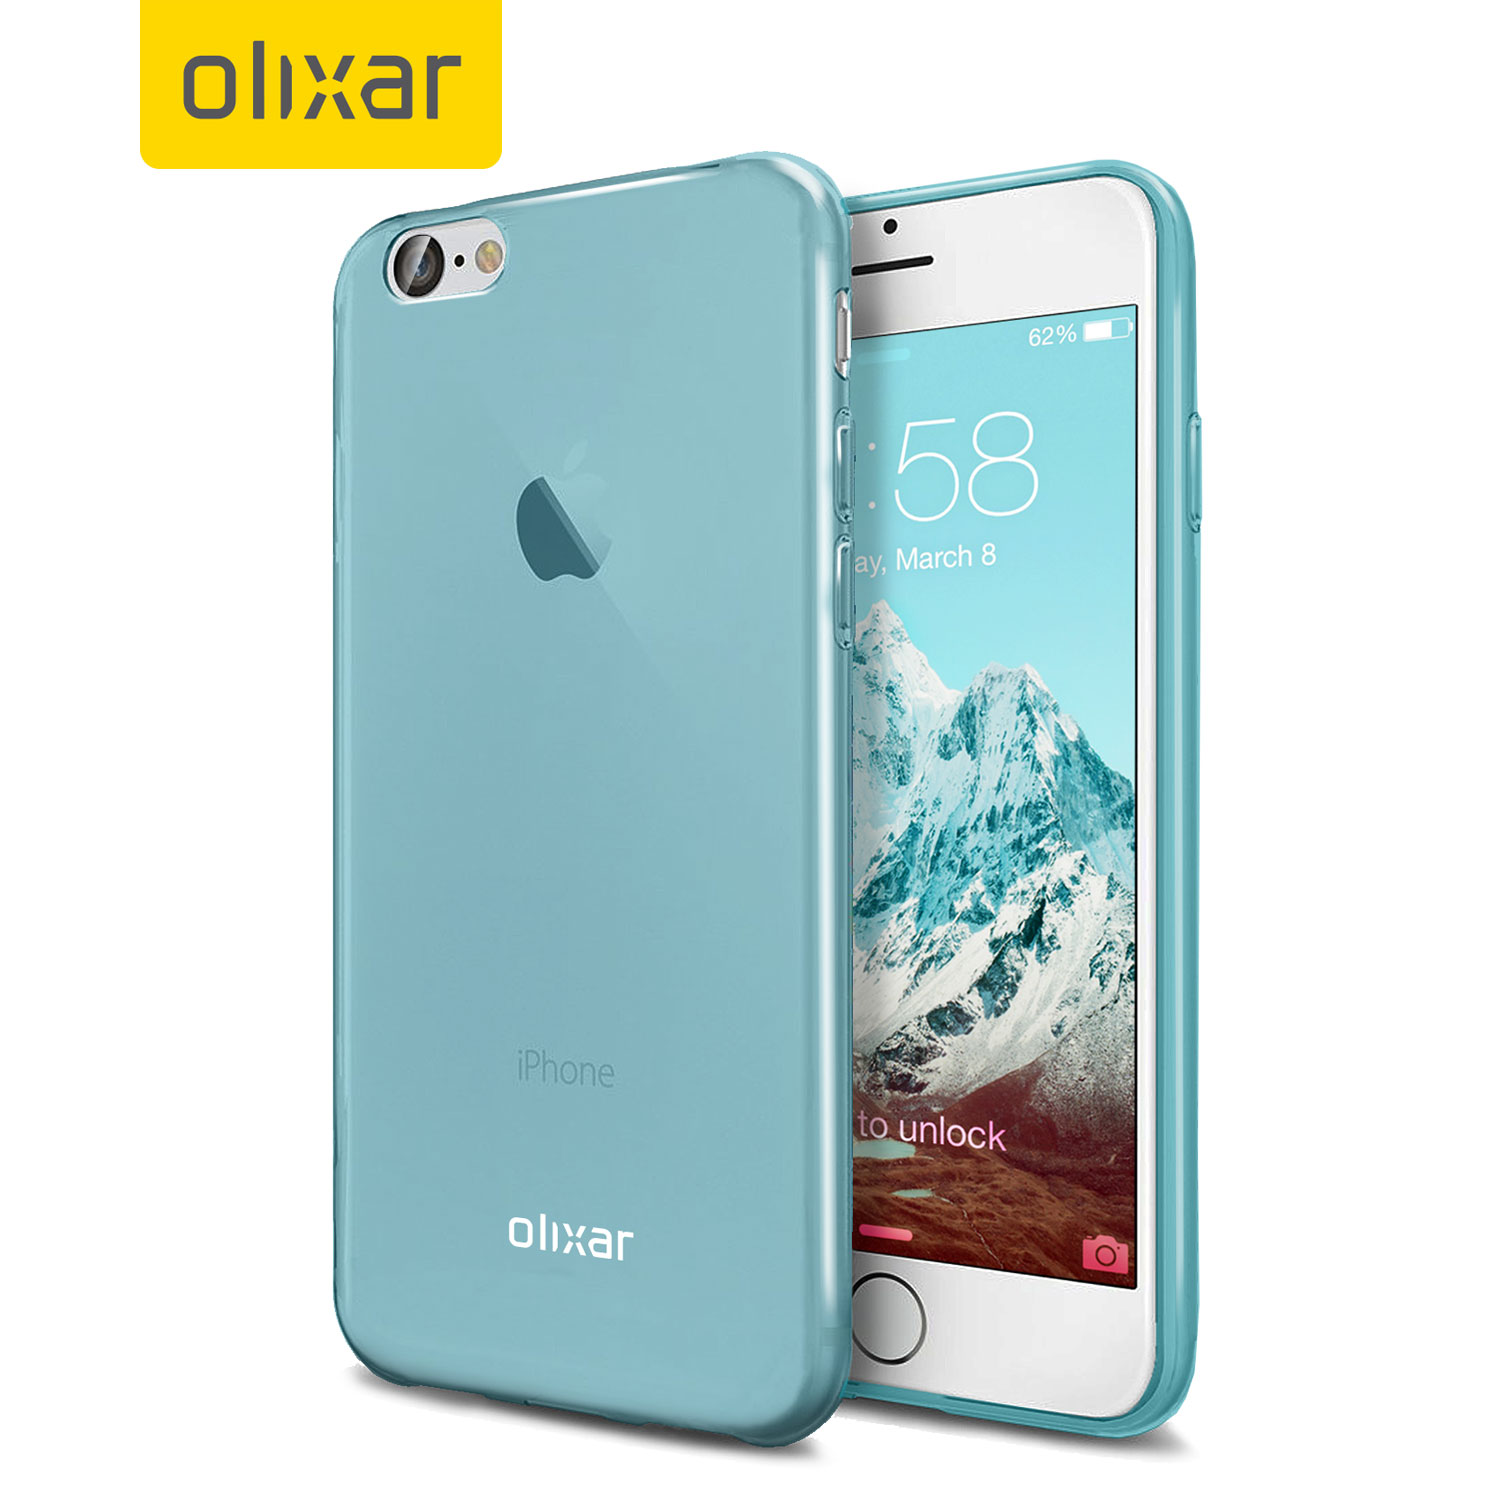 iPhone-7-and-7-Plus-case-images-by-Olixar (2)